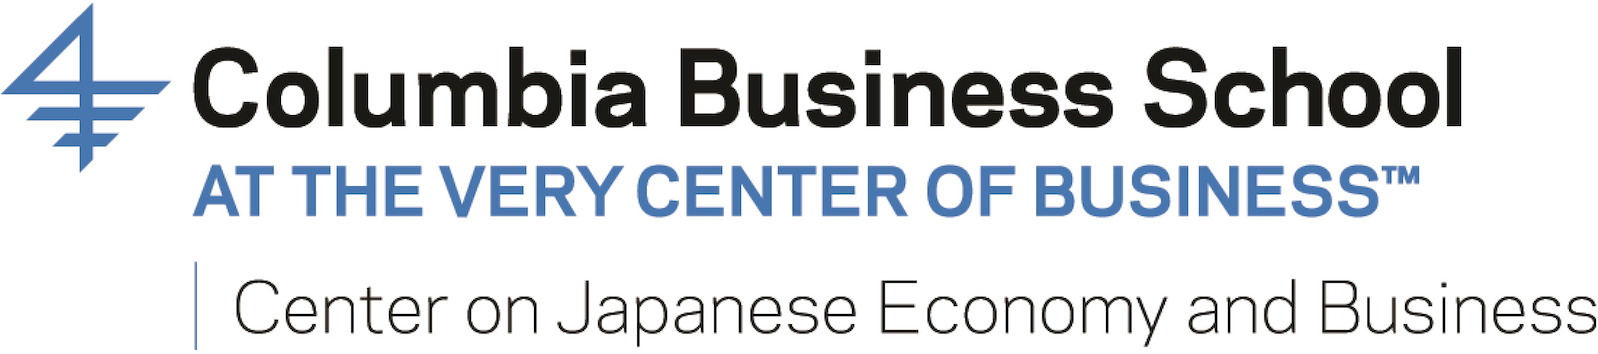 link to Center on Japanese Economy and Business site